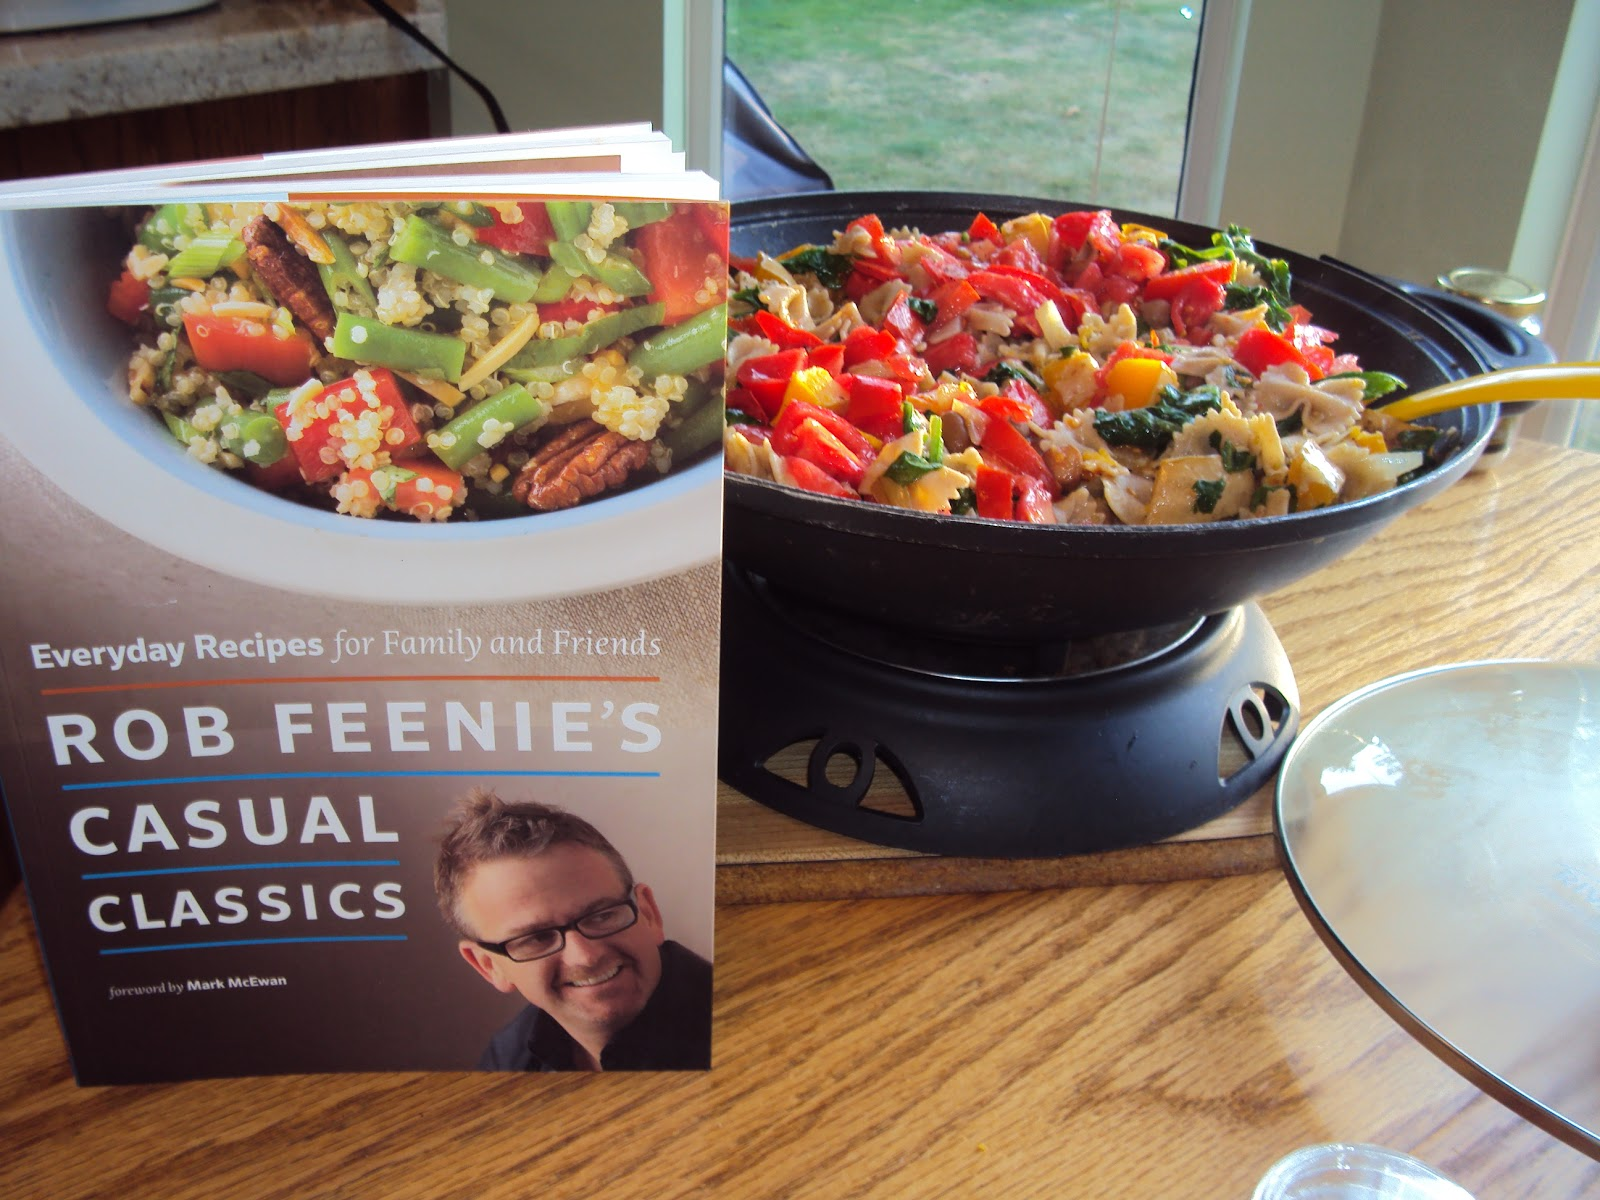 Life bites cook book chronicles rob feenies casual classics i love cook books i actually have been known to peruse cook books in bed before i fall asleep kinda weird i know forumfinder Images